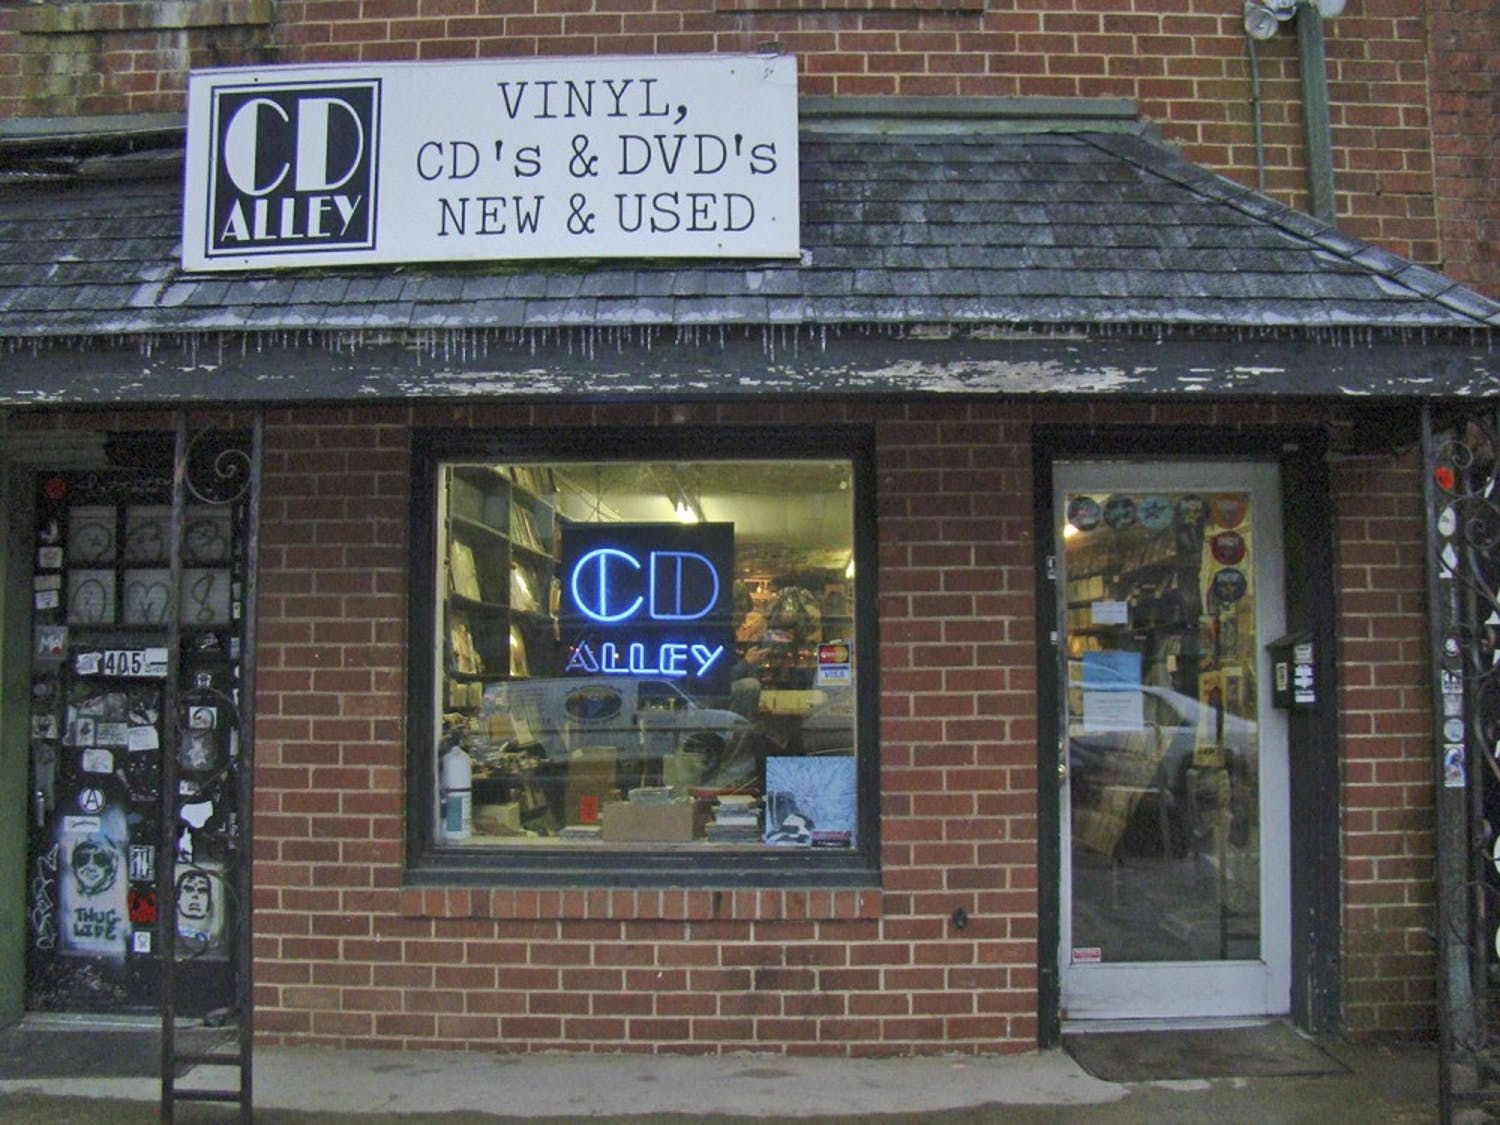 Schoolkids Records is making a comeback to Chapel Hill. Originally getting its start in the '80s and then moving to Raleigh, Schoolkids will be opening a 2nd location back in its hometown, taking over the location of CD Alley on Franklin St.